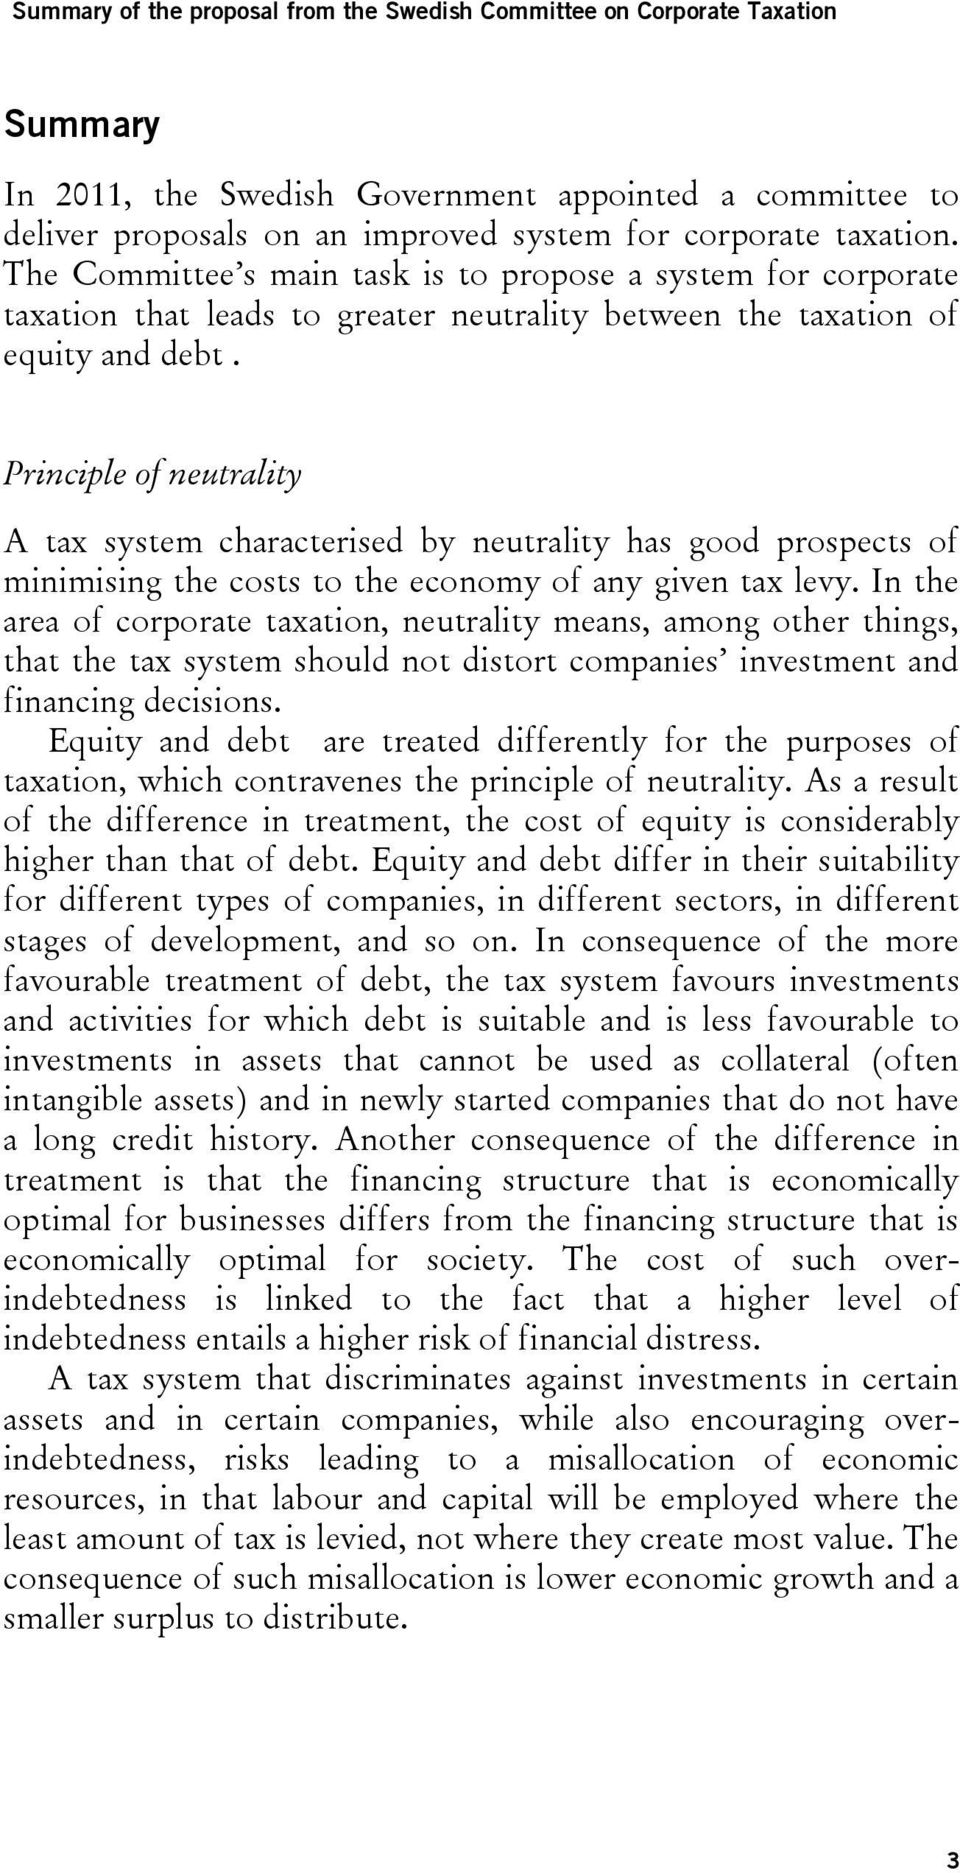 Principle of neutrality A tax system characterised by neutrality has good prospects of minimising the costs to the economy of any given tax levy.